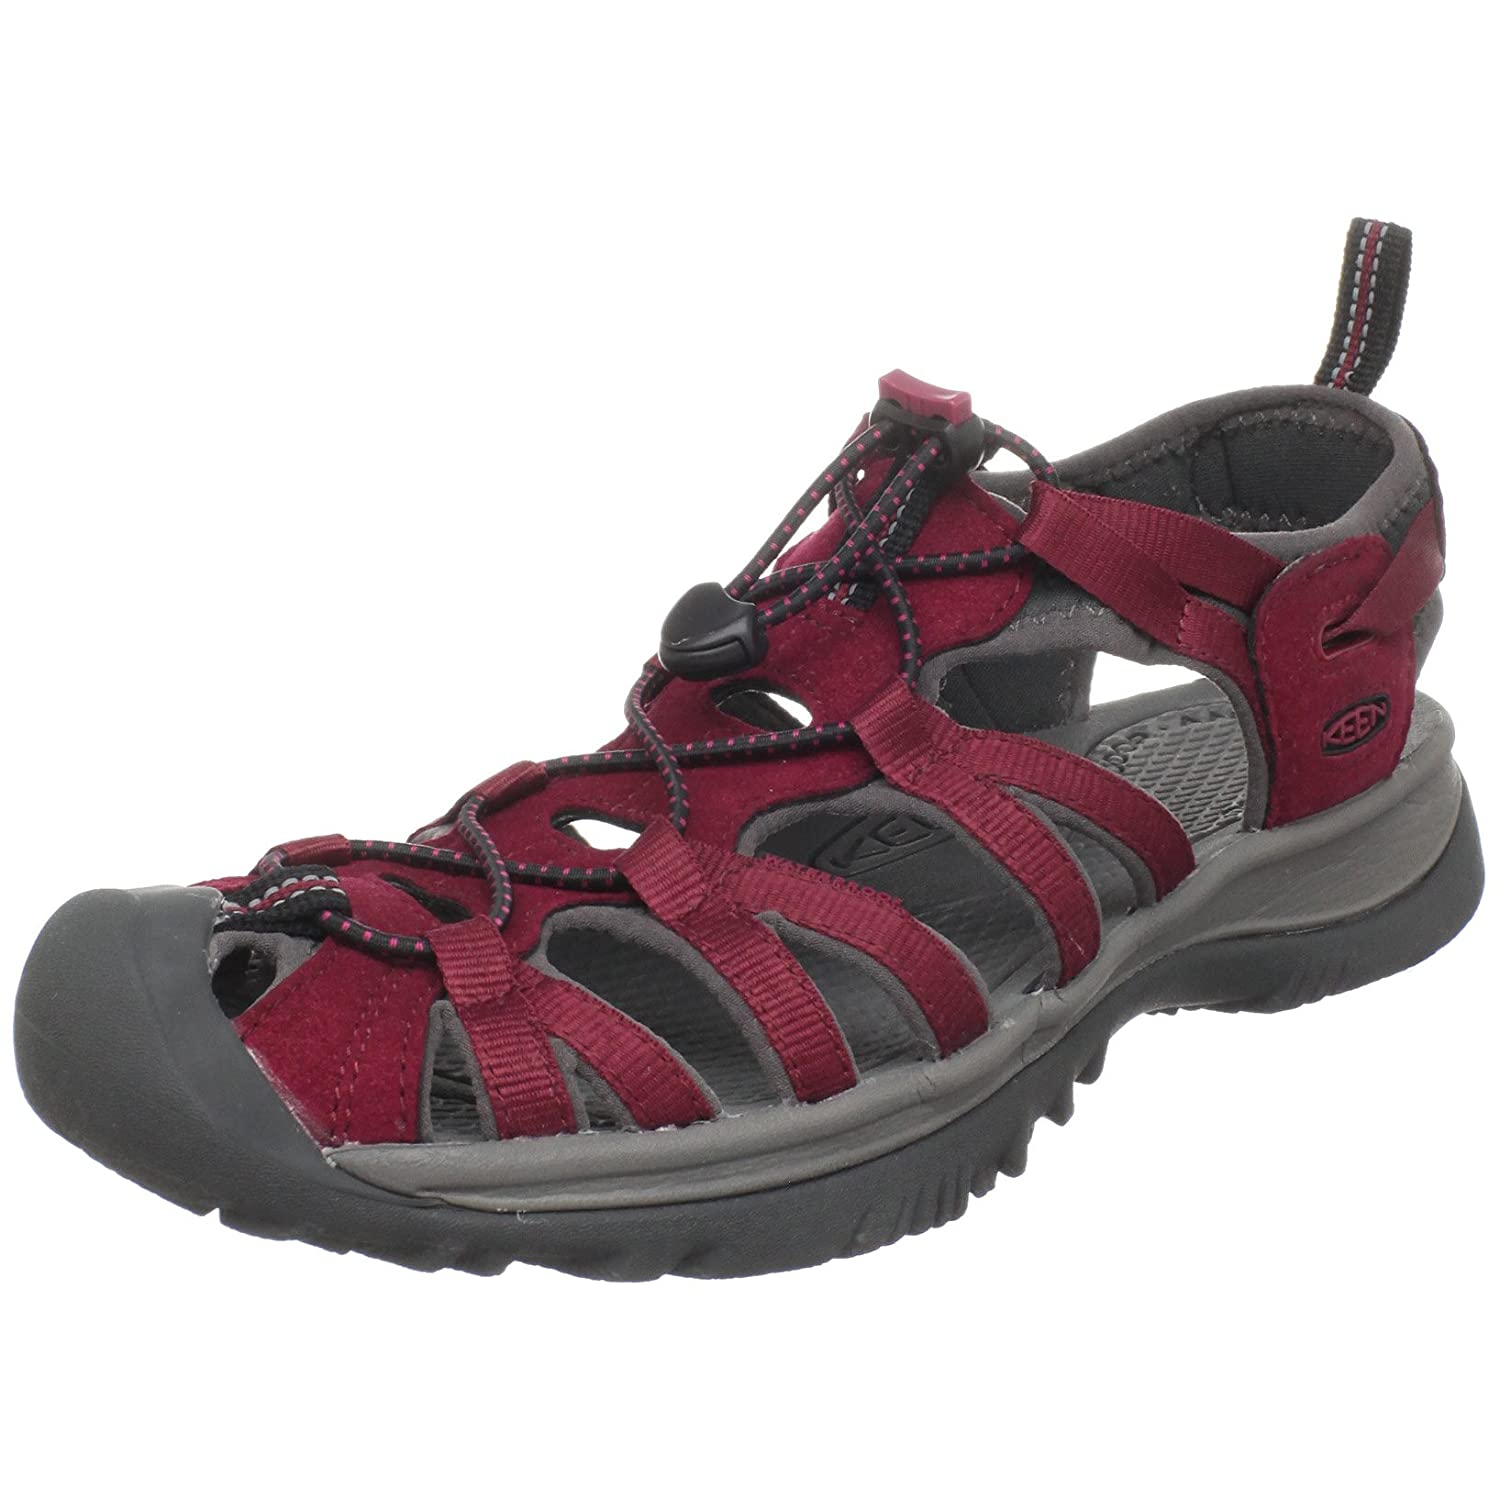 Keen WHISPER 1003713, WHISPER Red/Honeysuckle Sandales femme Keen Beet Red/Honeysuckle 08c3dcb - boatplans.space